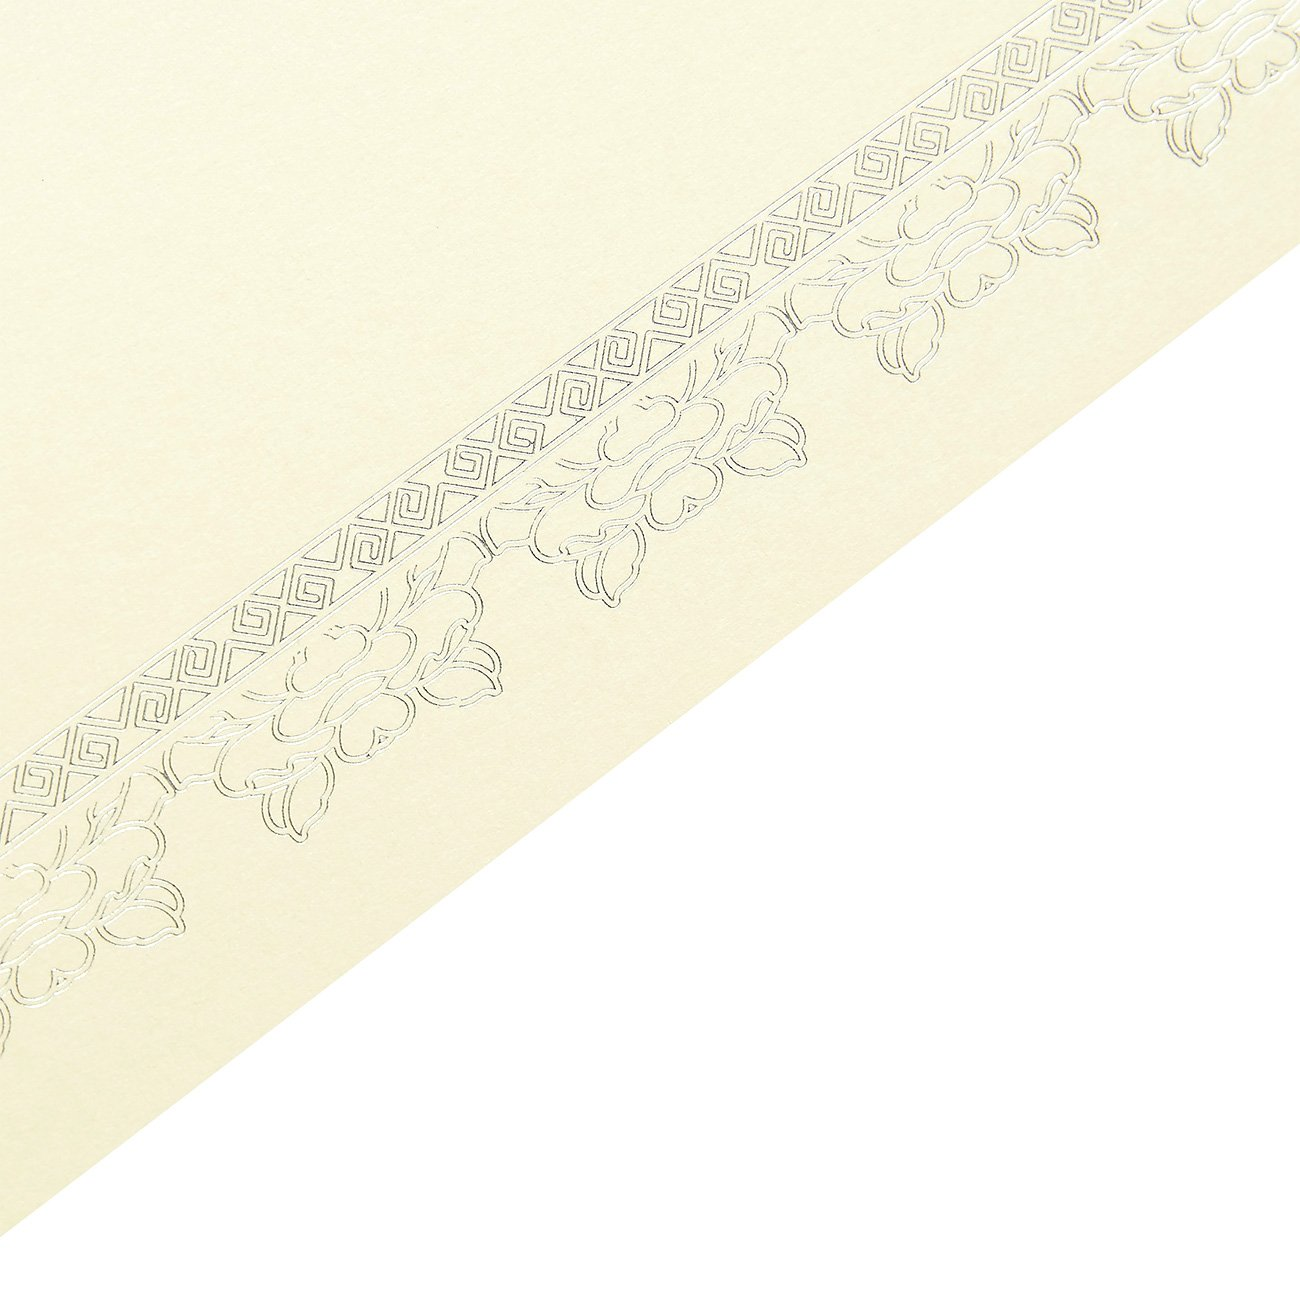 Gold Letter Size Blank Silver Foil Border Specialty Award Paper Printer Friendly 8.5 x 11 Inches 48 Pack Certificate Paper